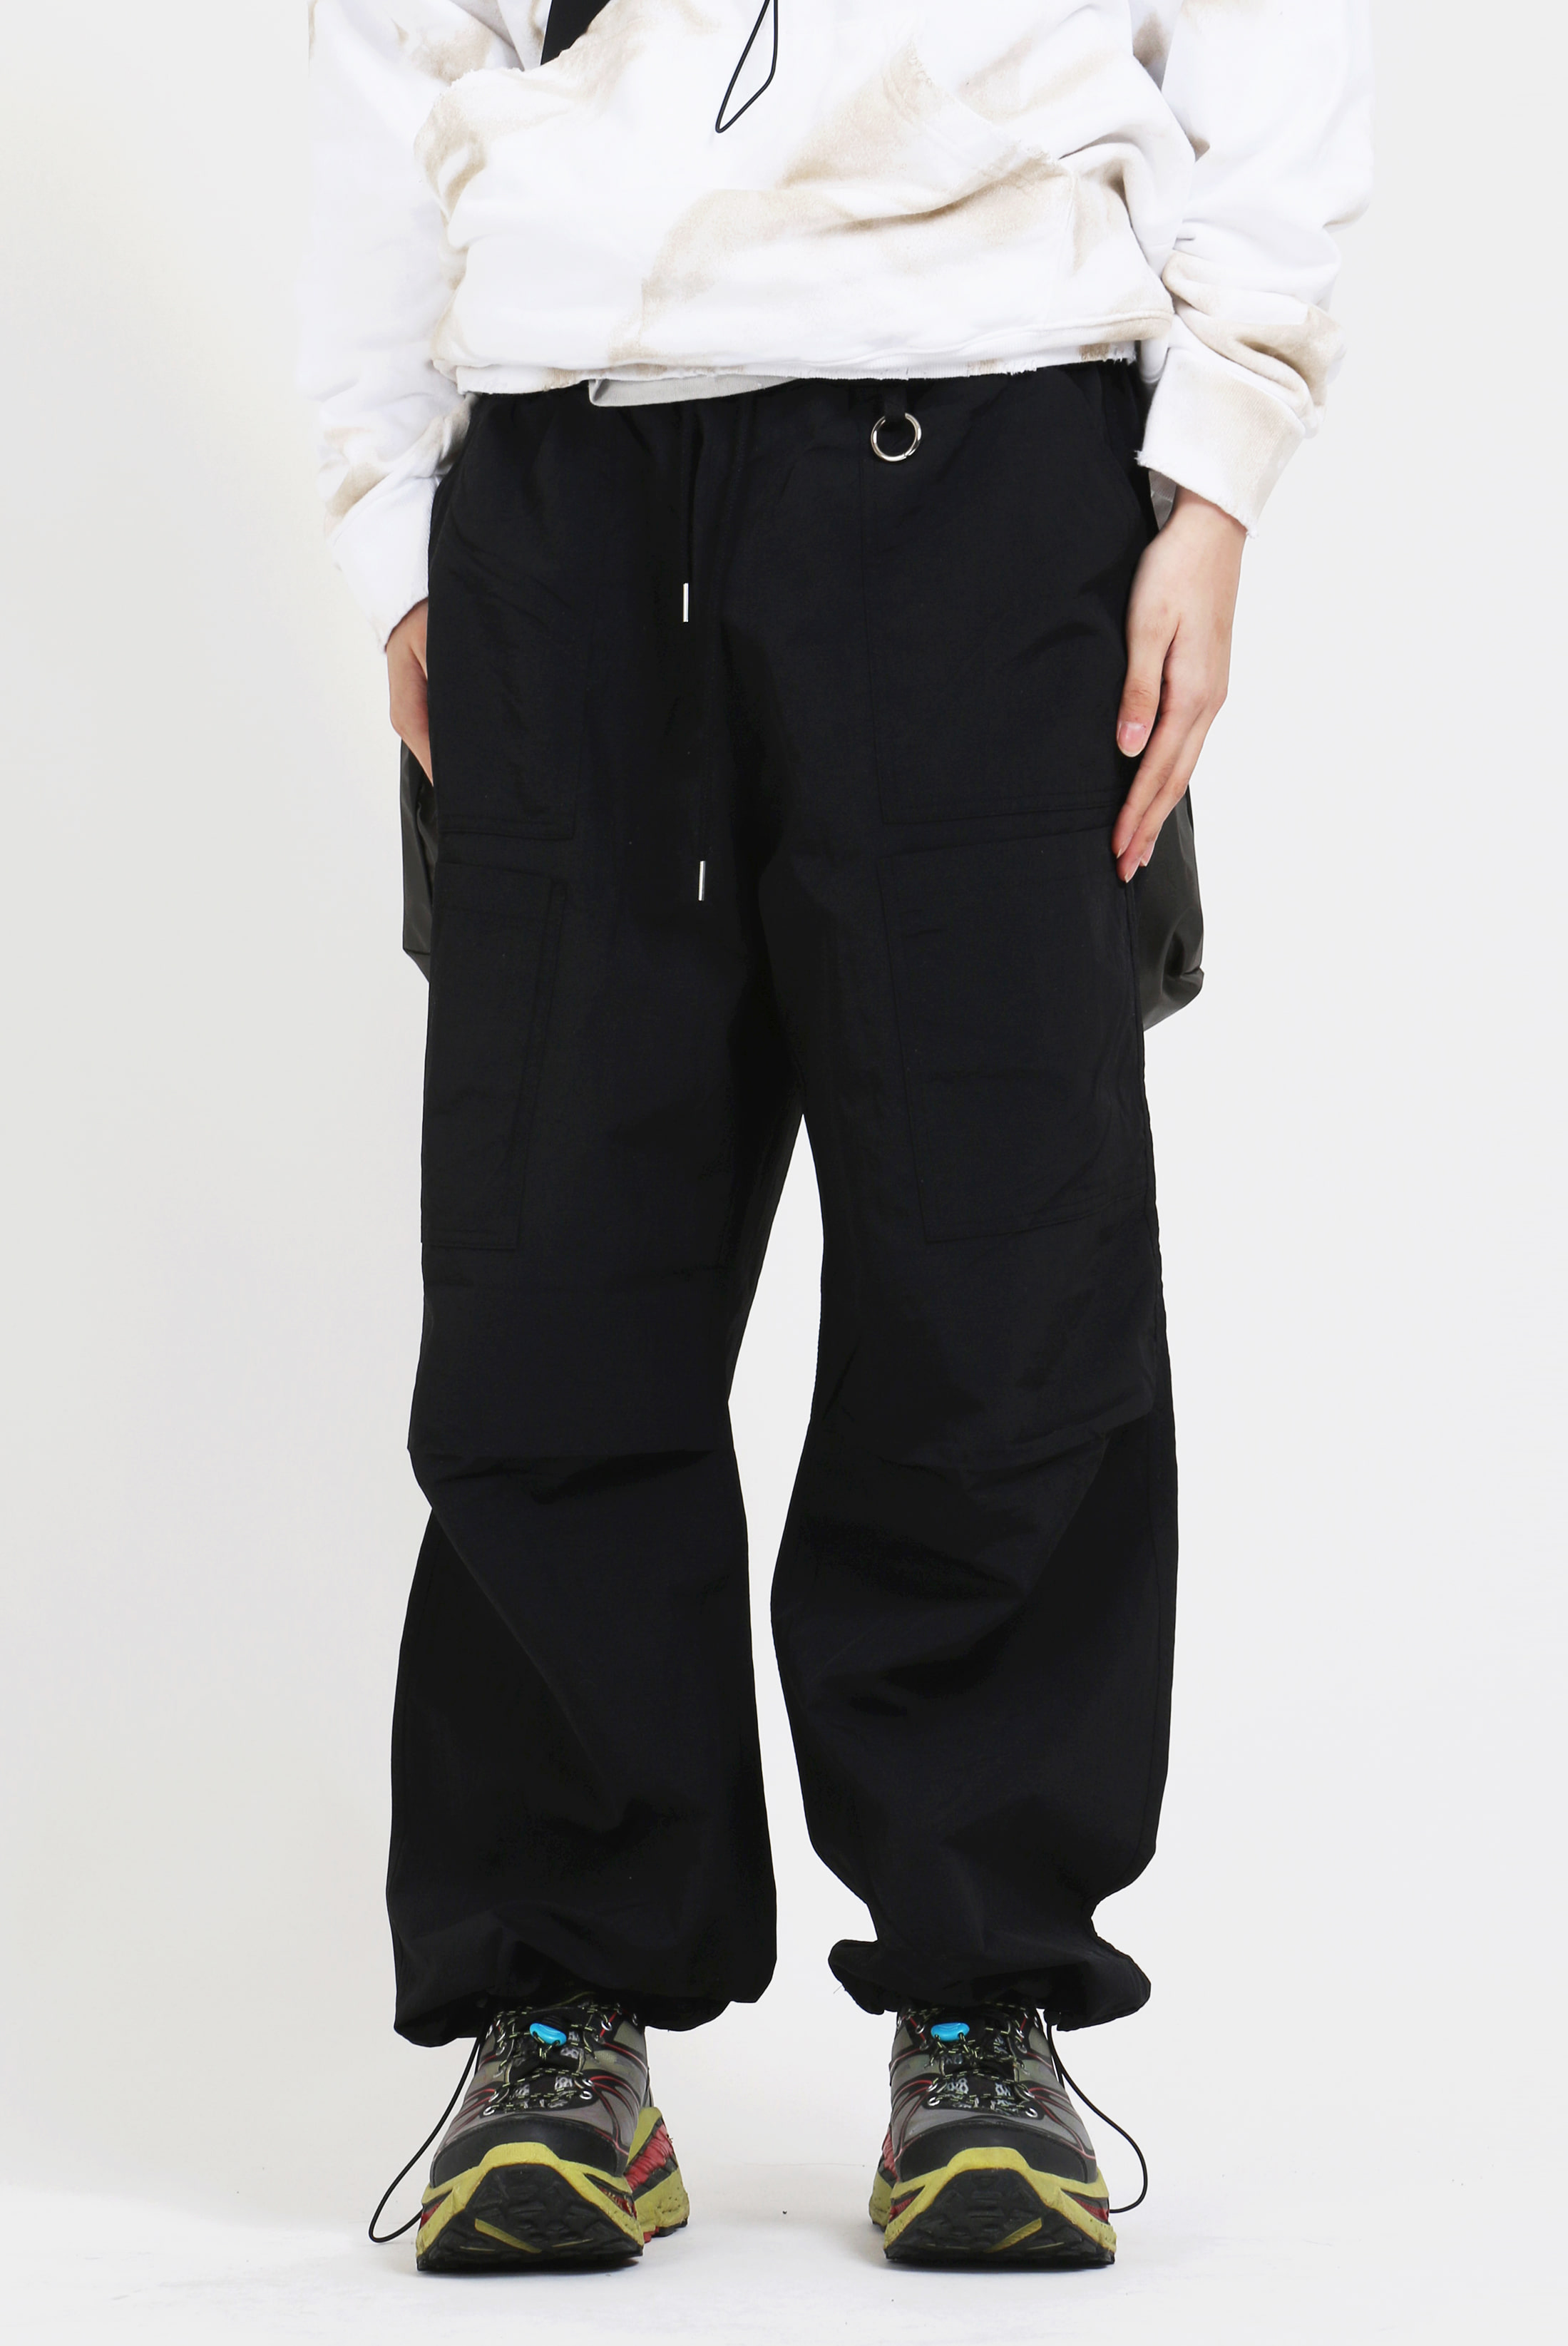 N6 Loose_Wide Poket Pants